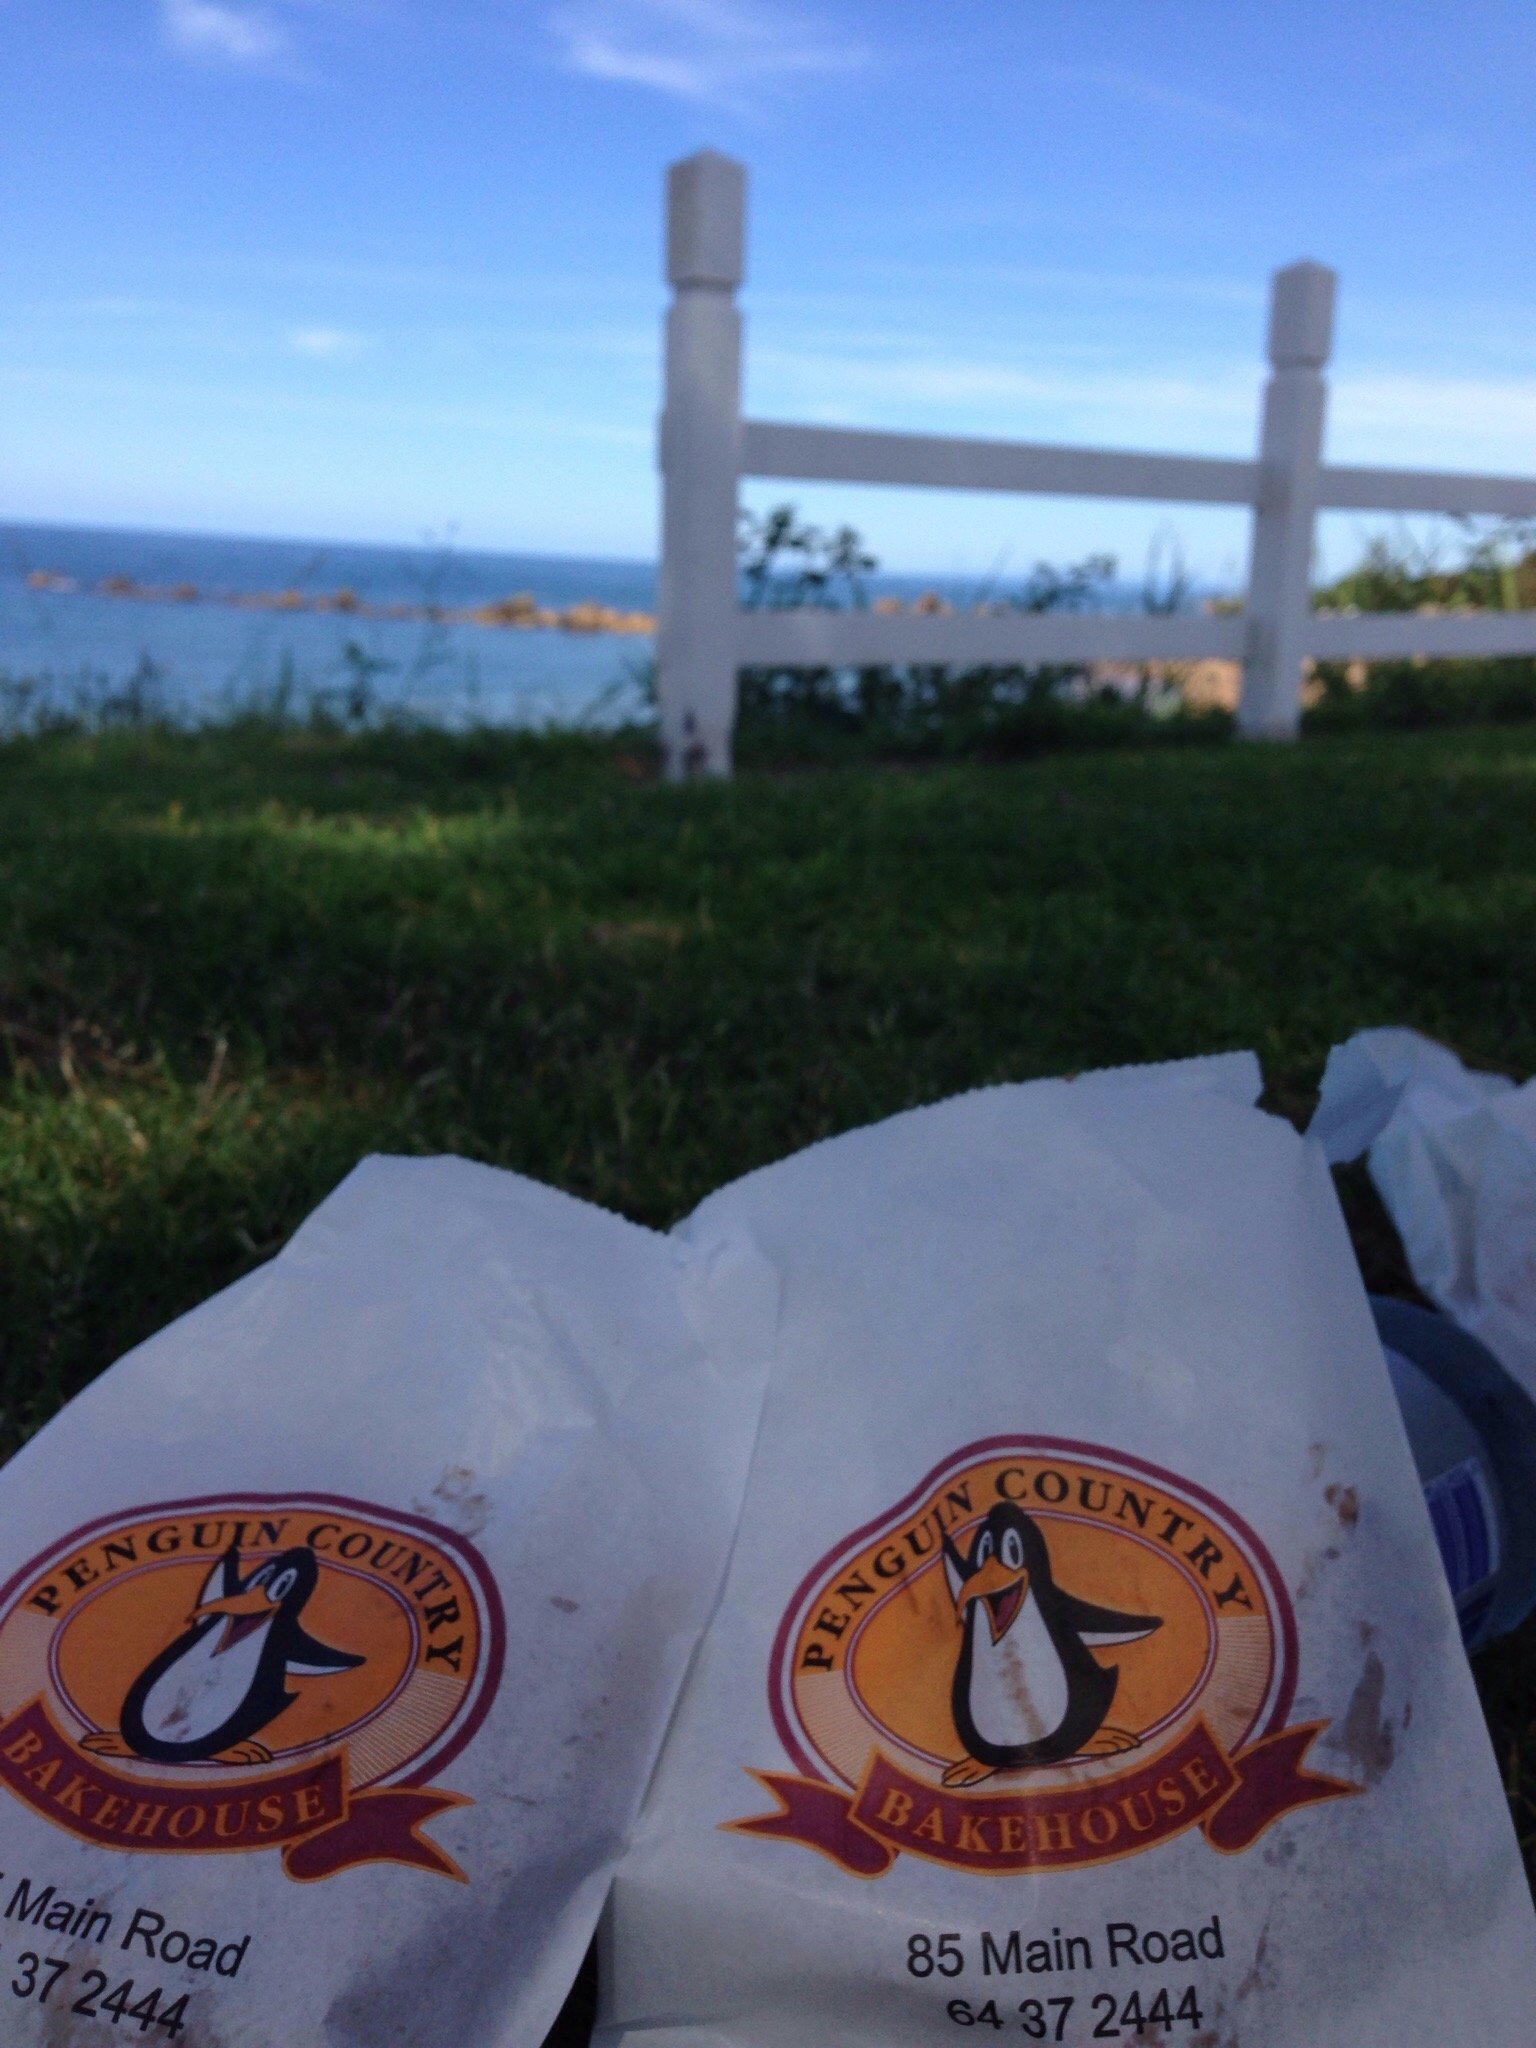 Penguin Country Bakehouse - New South Wales Tourism